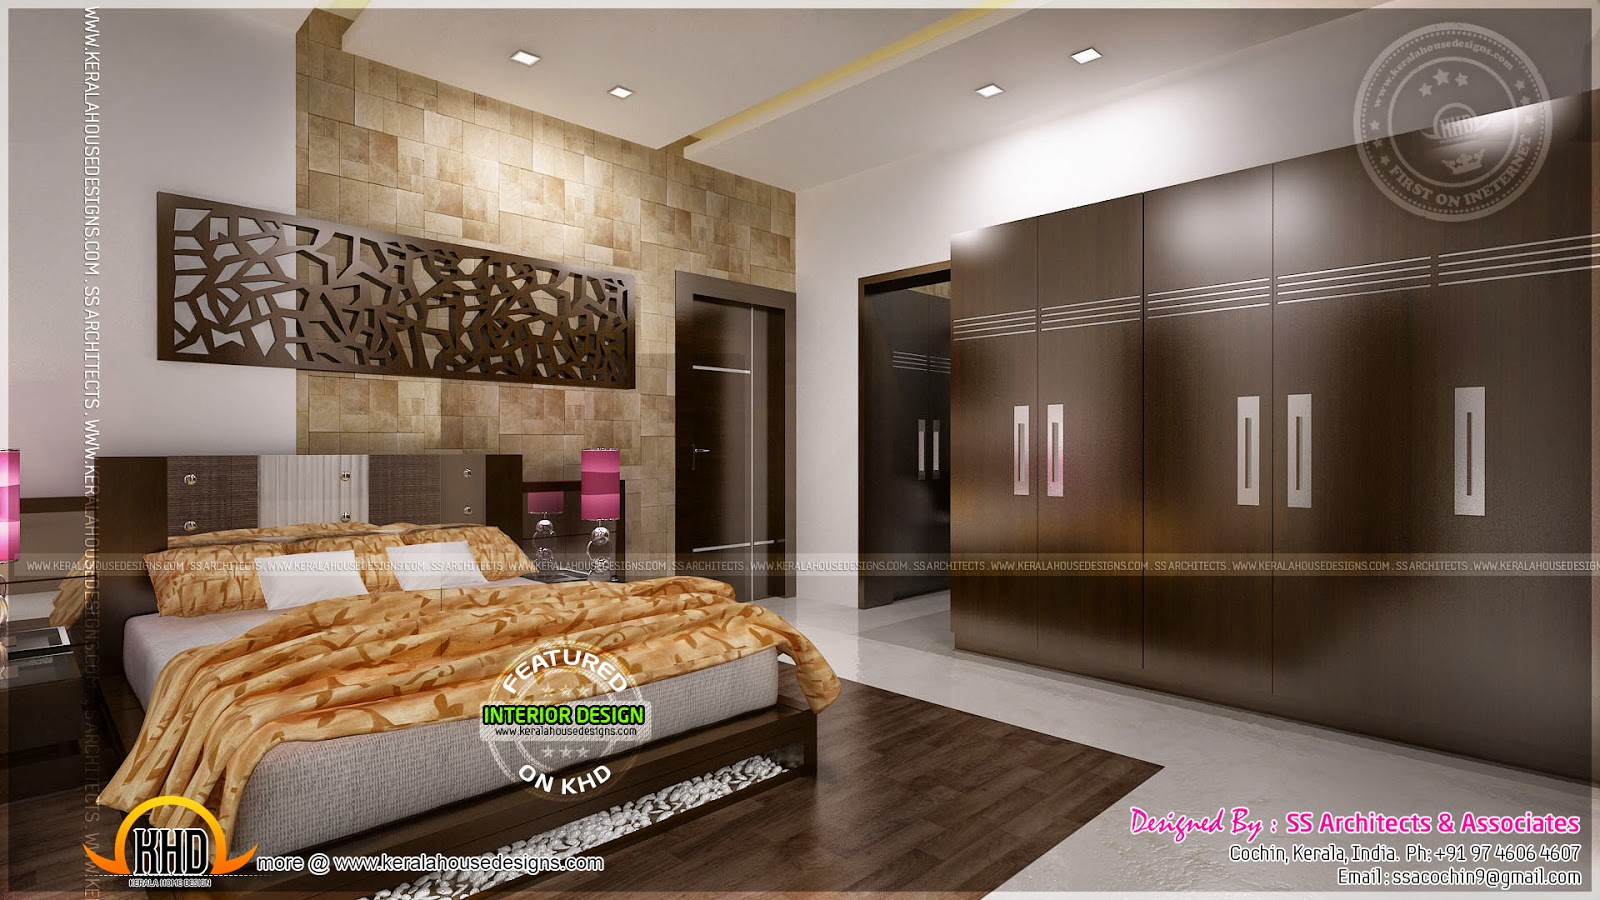 Awesome master bedroom interior kerala home design and for Interior design images bedroom